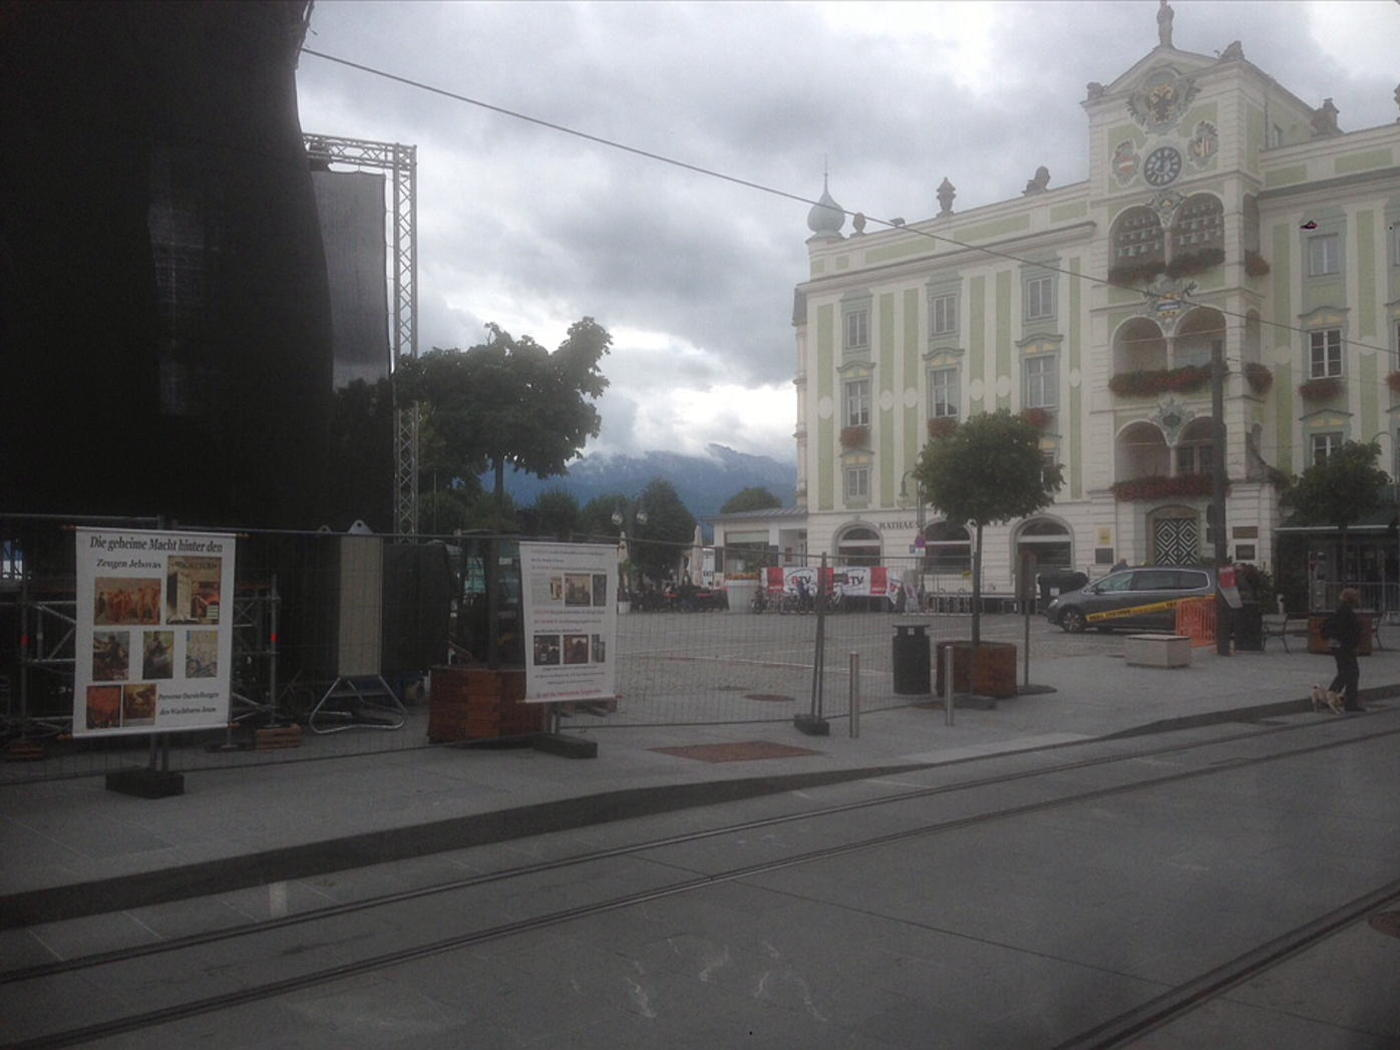 Action in Gmunden town square and in front of two kingdom halls